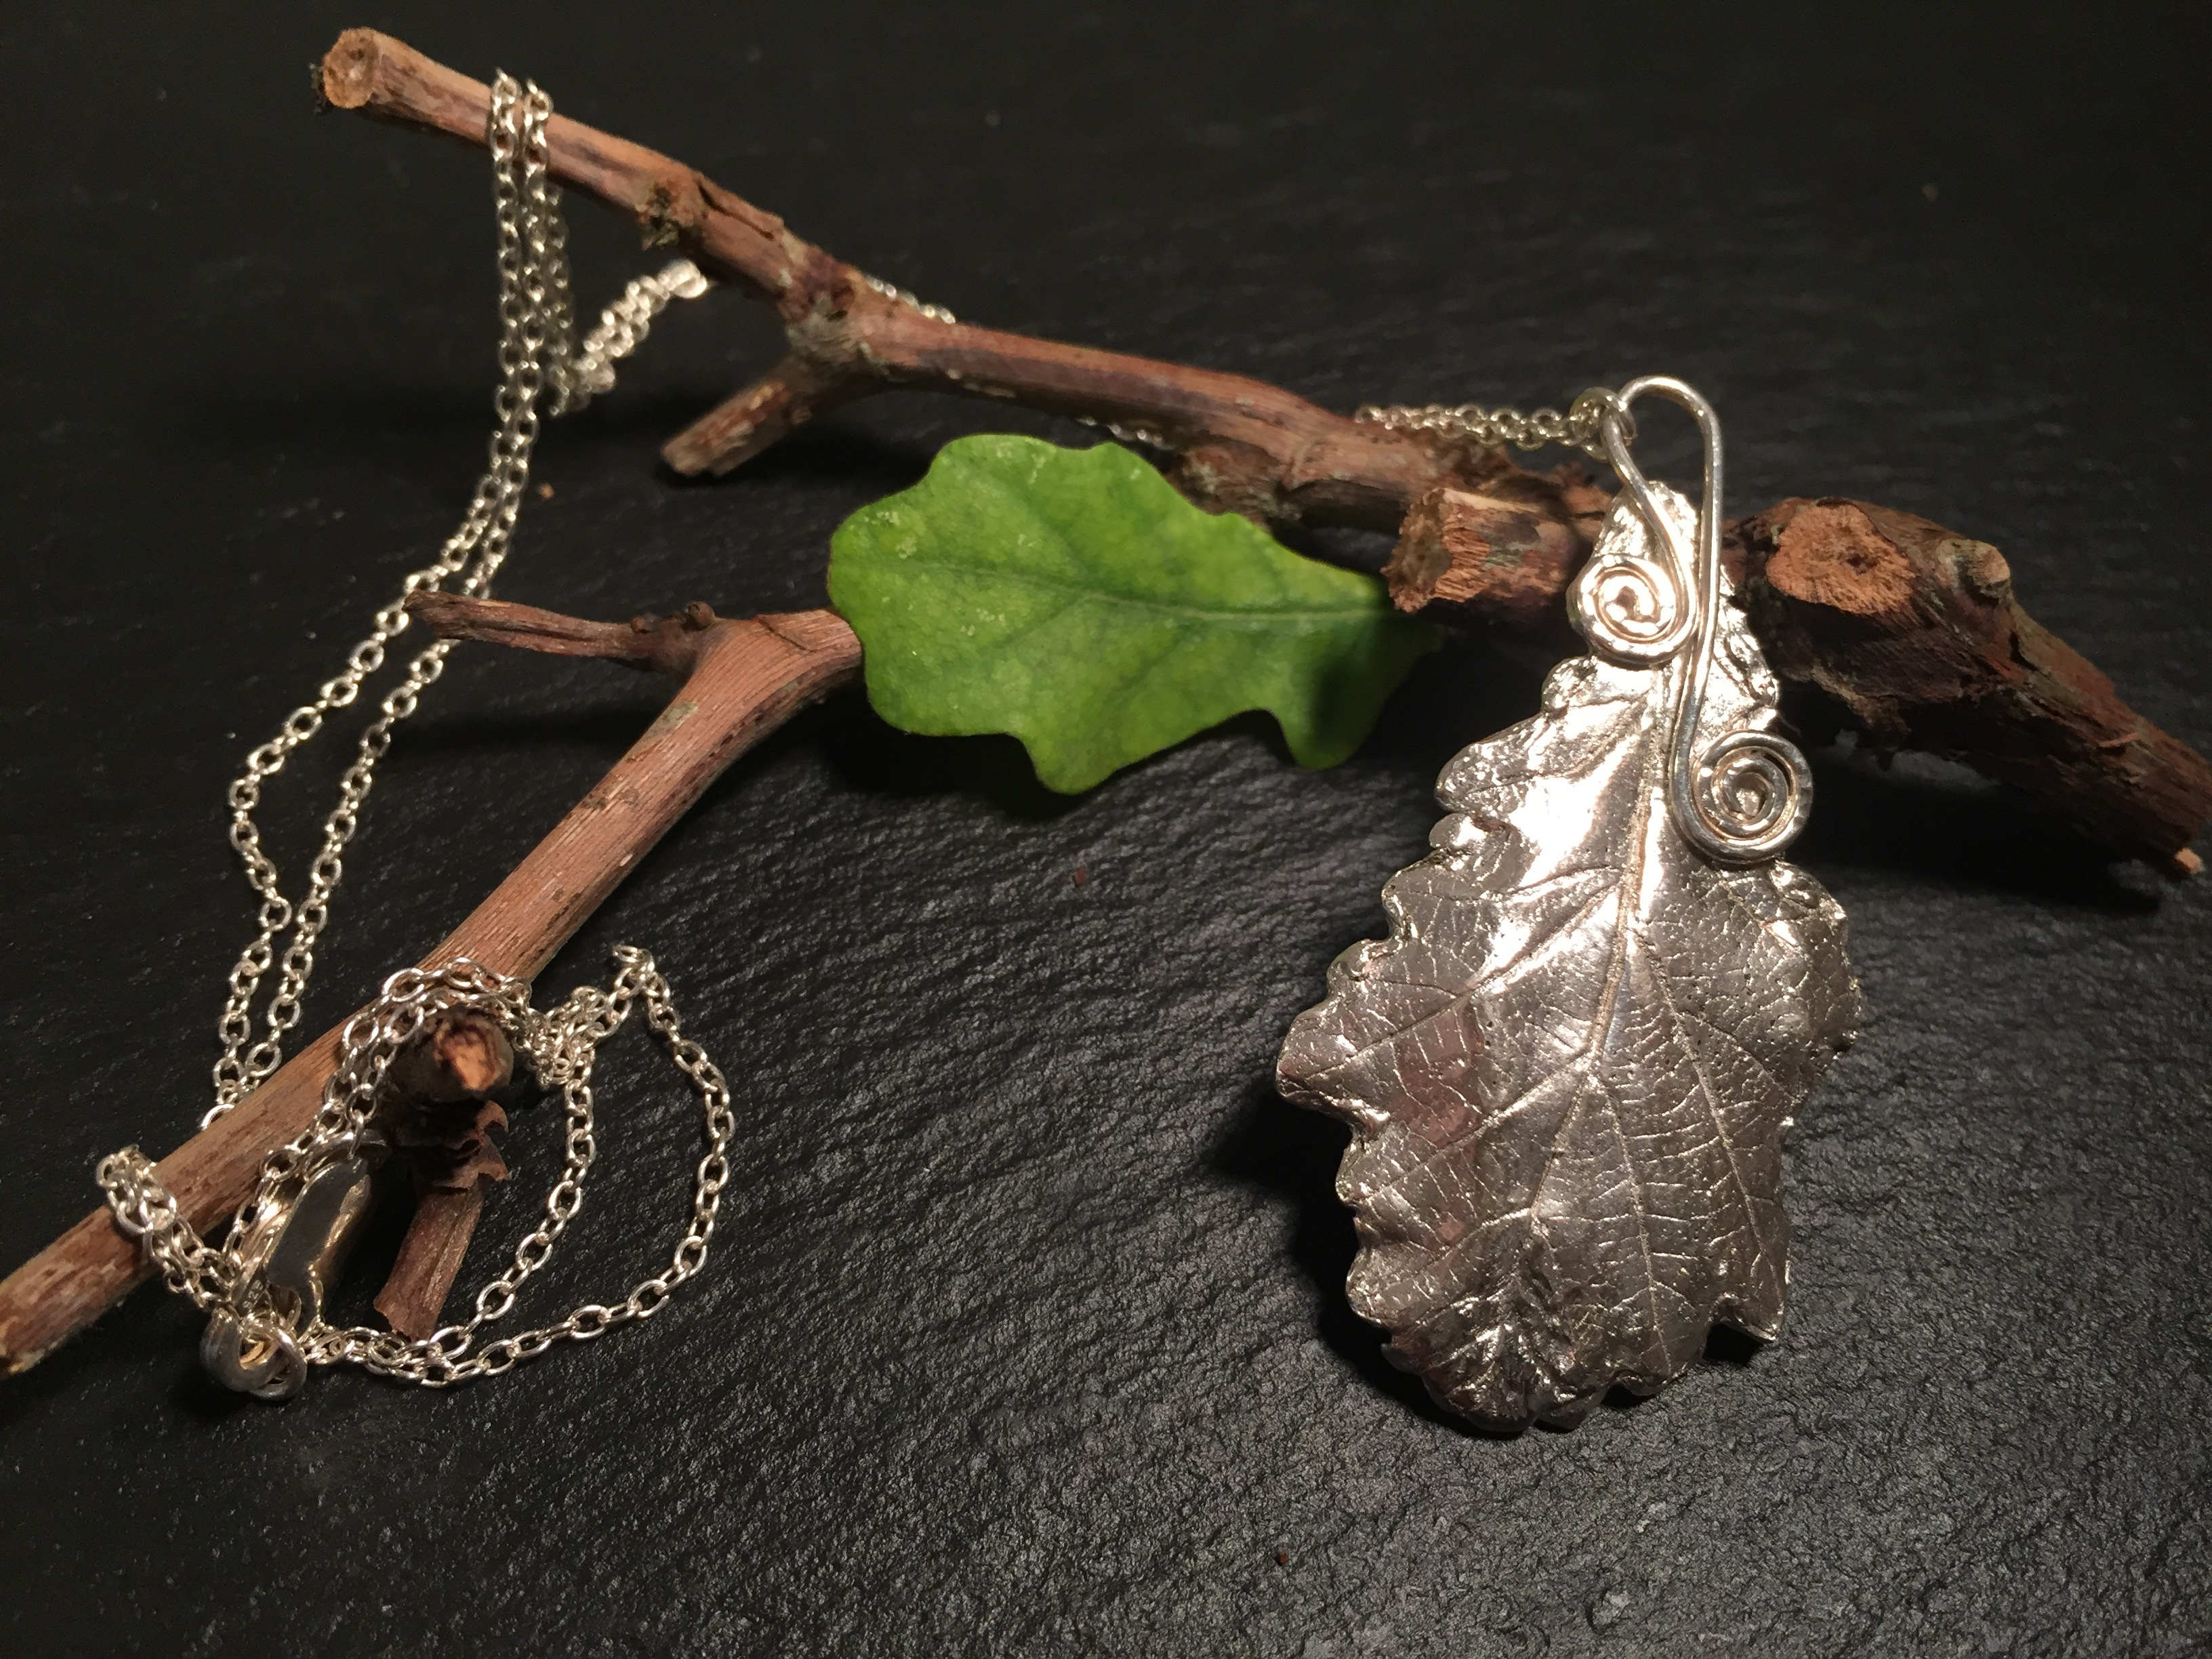 Oak Leaf Pendant Throughout Most Popular Oak Leaf Necklaces (Gallery 22 of 25)